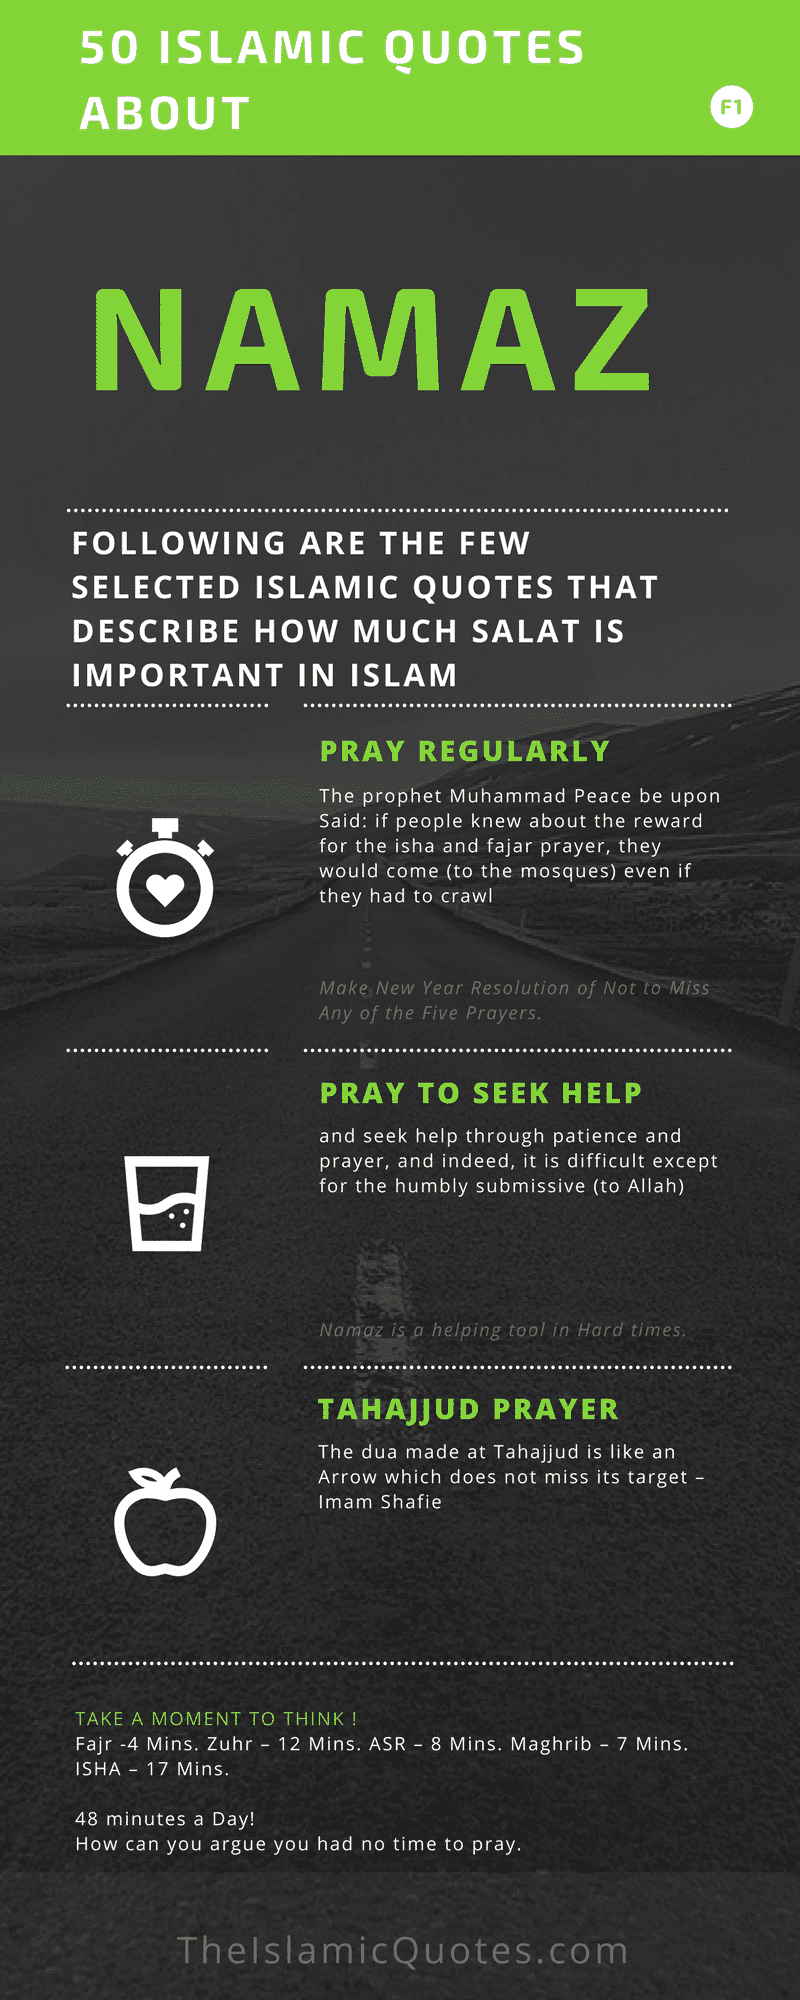 Importance of Prayer in Islam